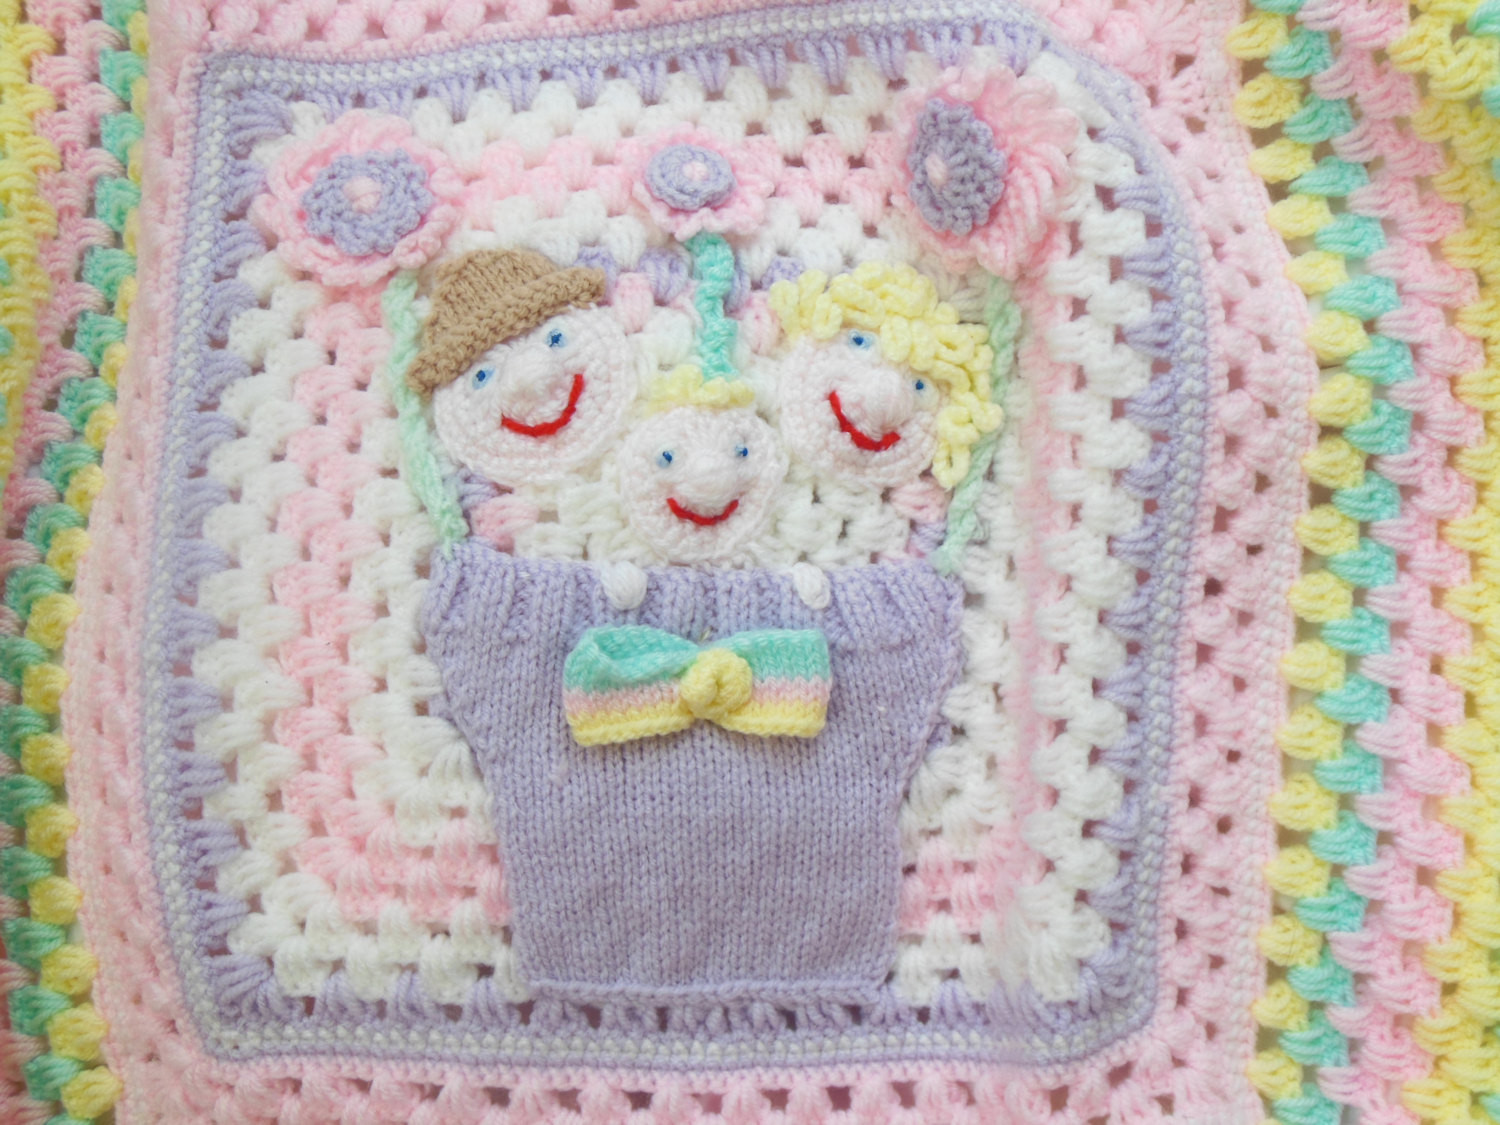 New Christmas Crochet Baby Blanket Baby Gift Crochet Baby Gift Of Innovative 49 Models Crochet Baby Gift